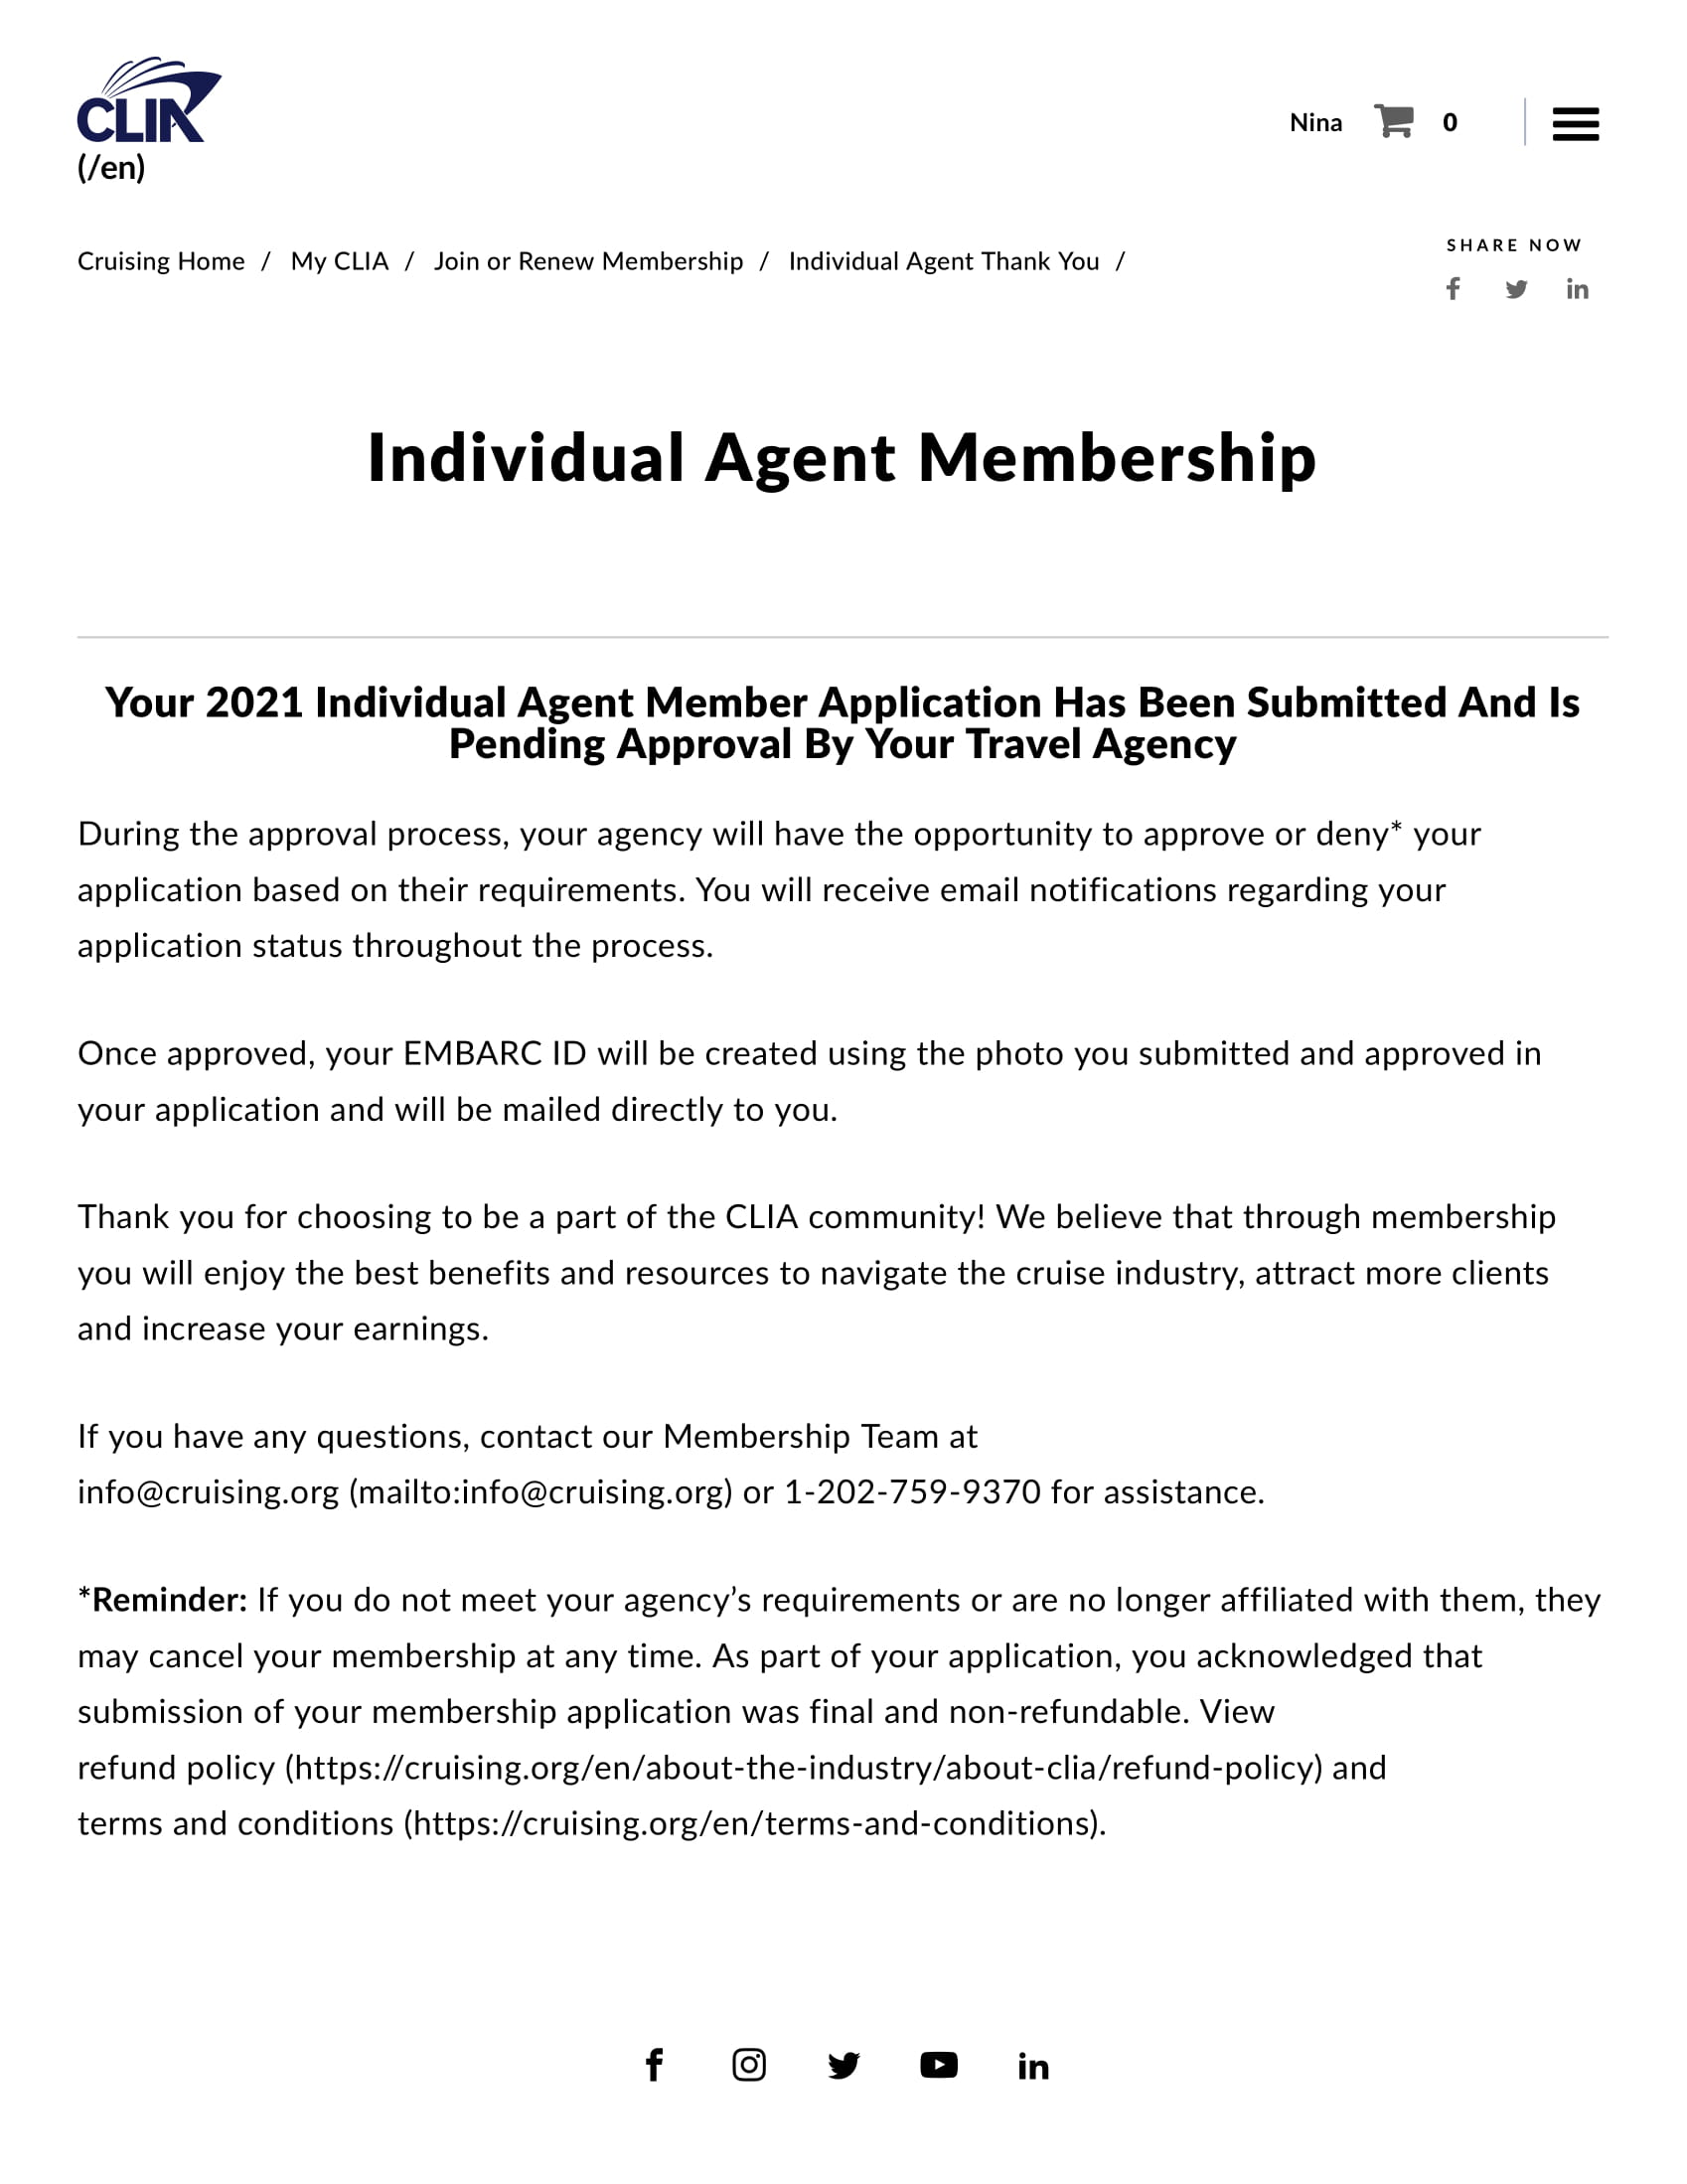 CLIA - Individual Agent affiliated with Expedia Cruises - Membership Pending Approval-1